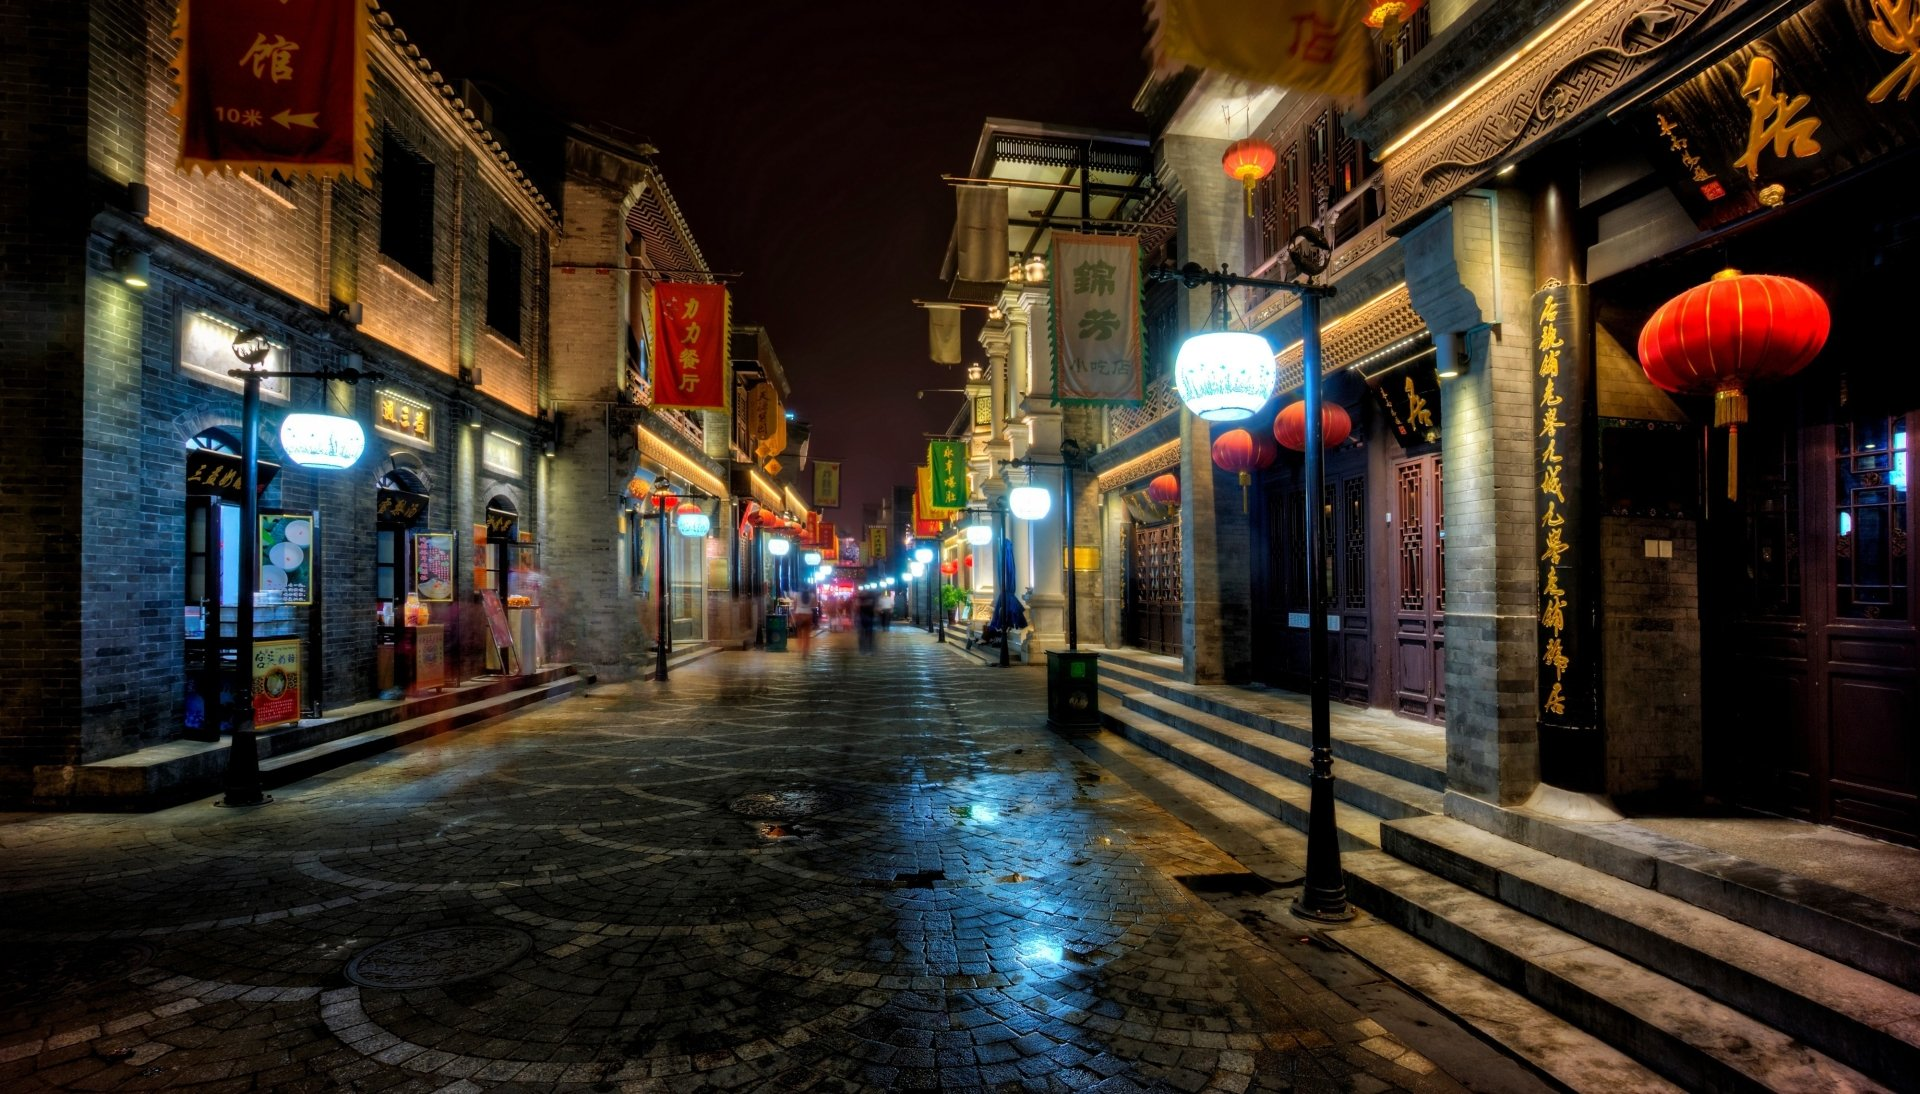 3d Wallpaper Made In China Streets Of Beijing 4k Ultra Hd Wallpaper Background